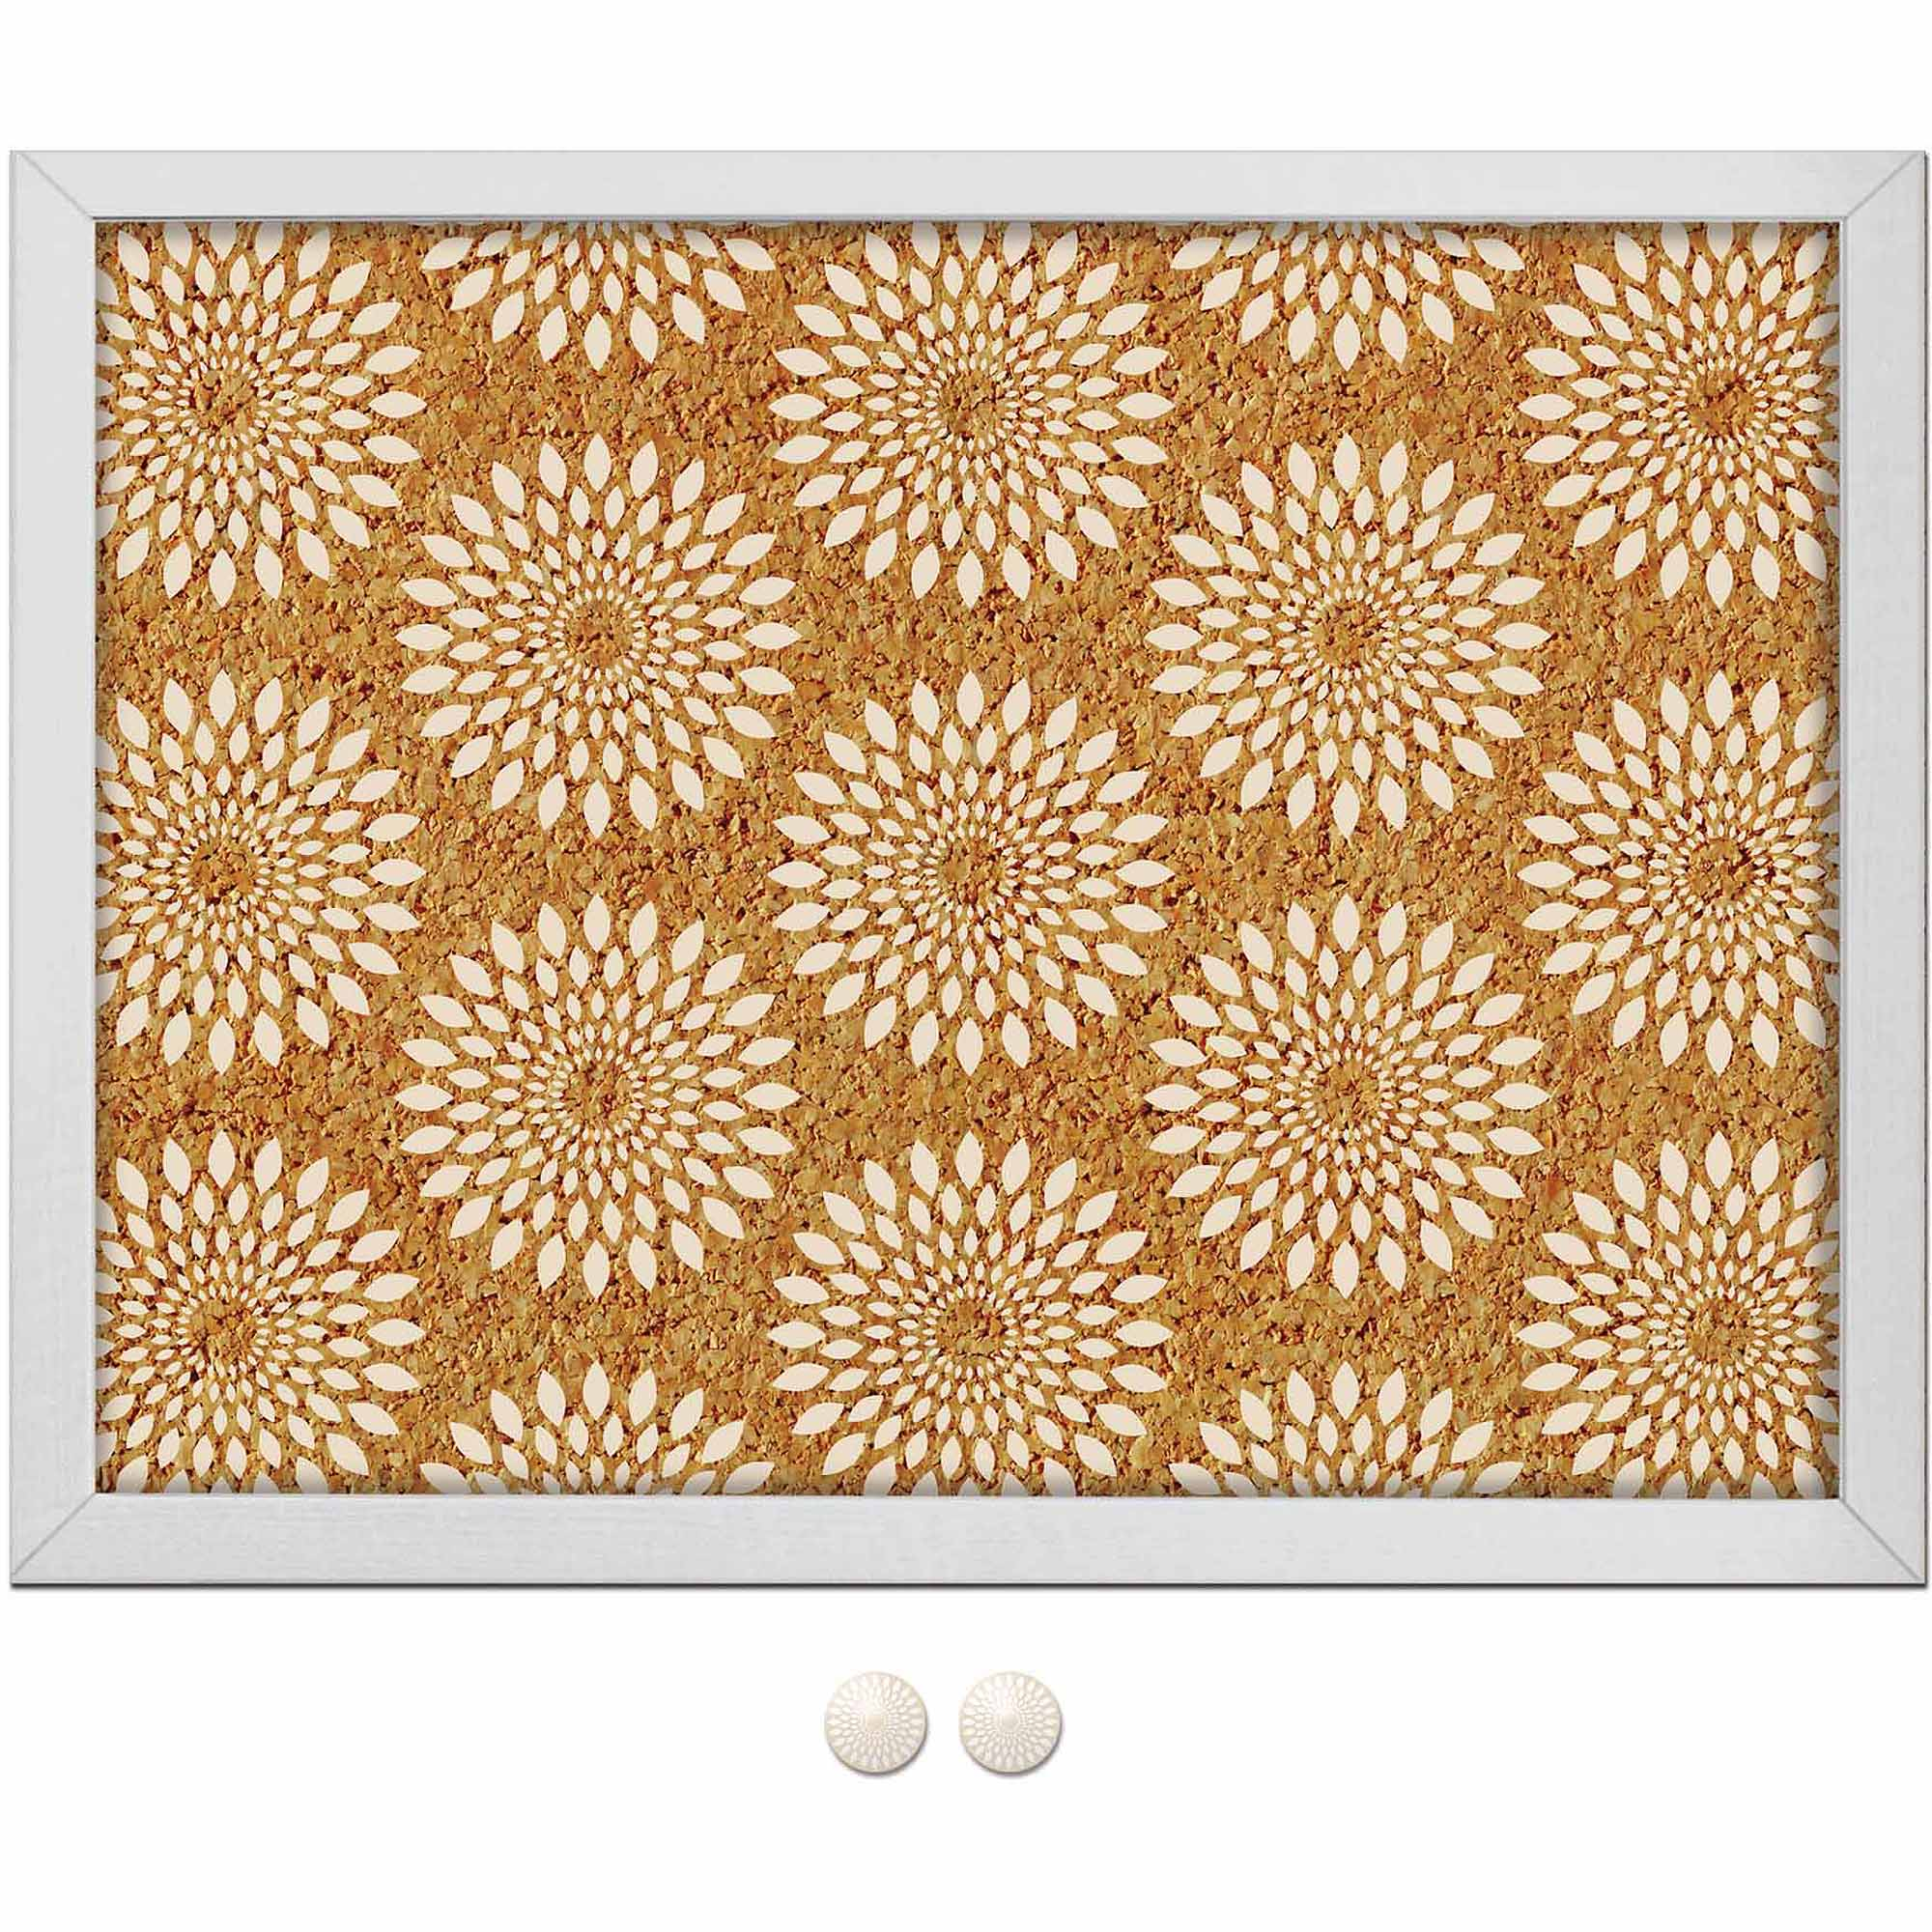 WallPops Catalina Printed Cork Board